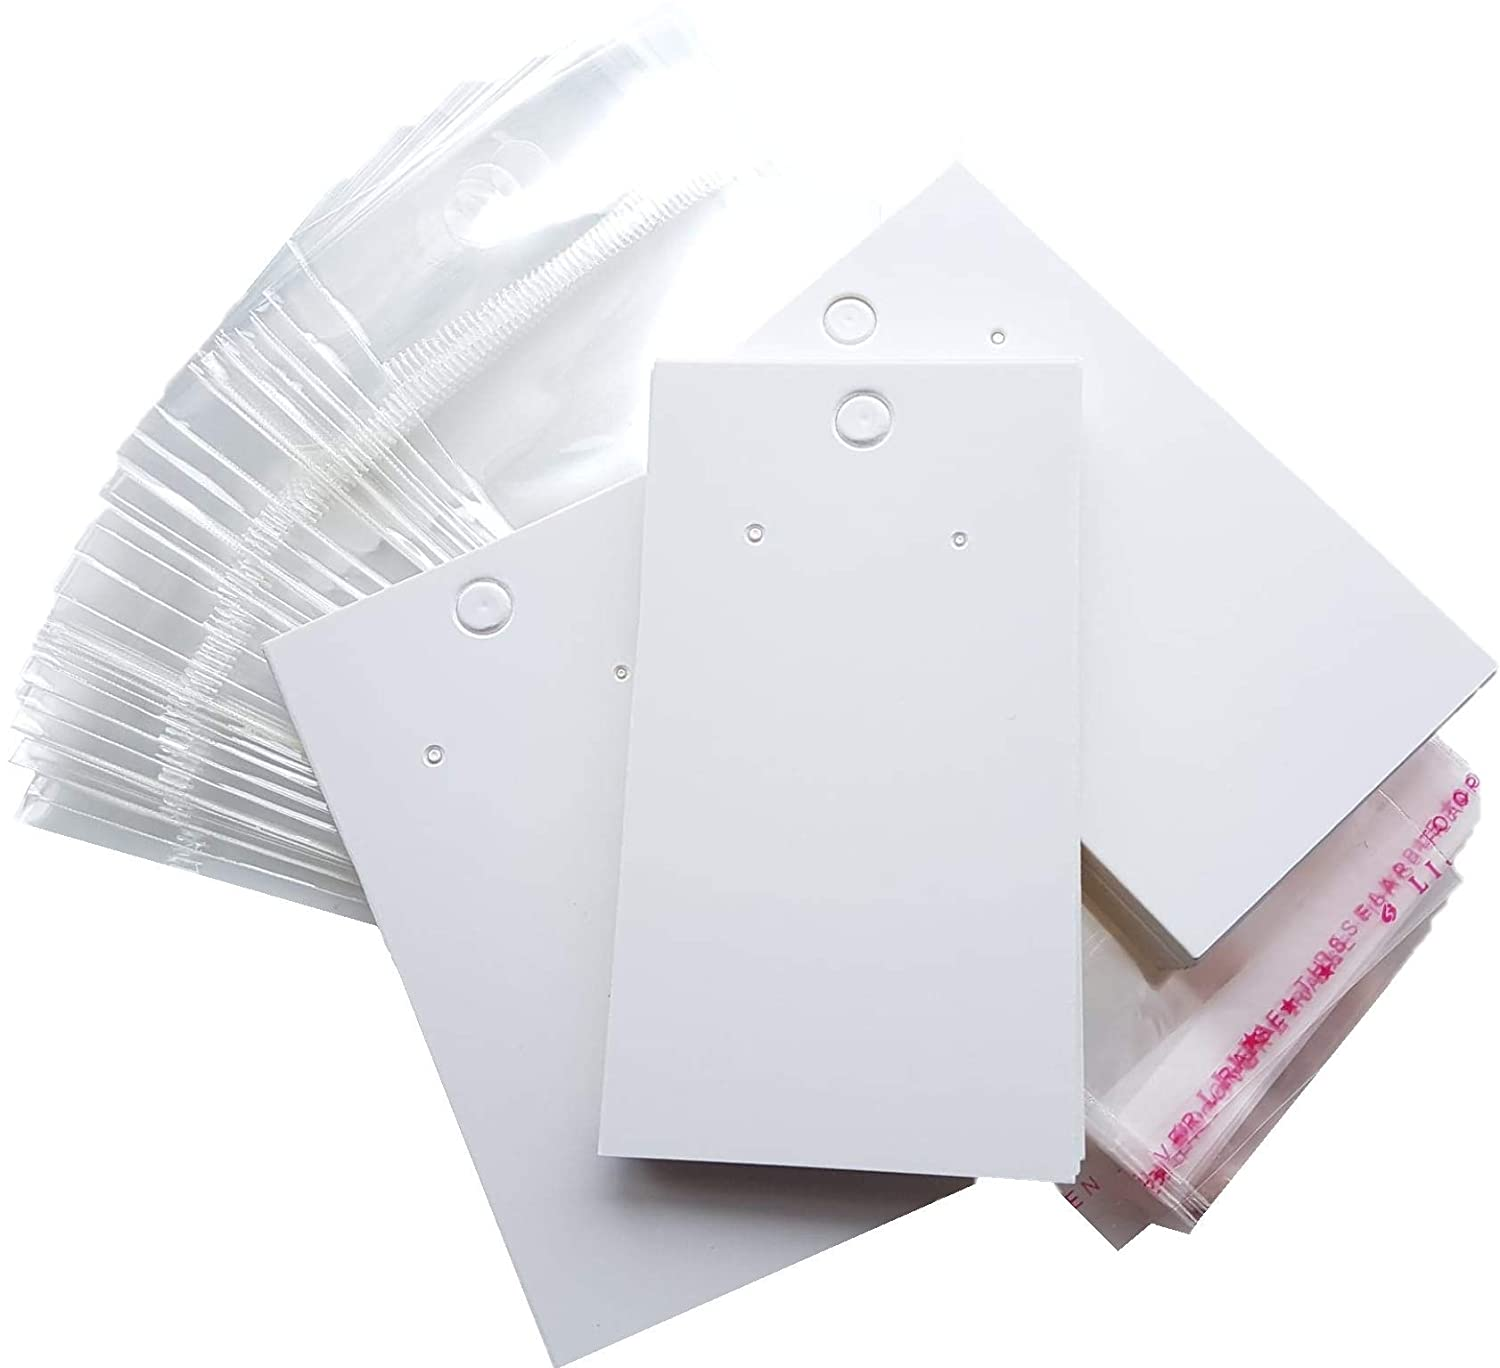 100 x Plain White Blank Earring Jewellery Display Cards With Bags n/a